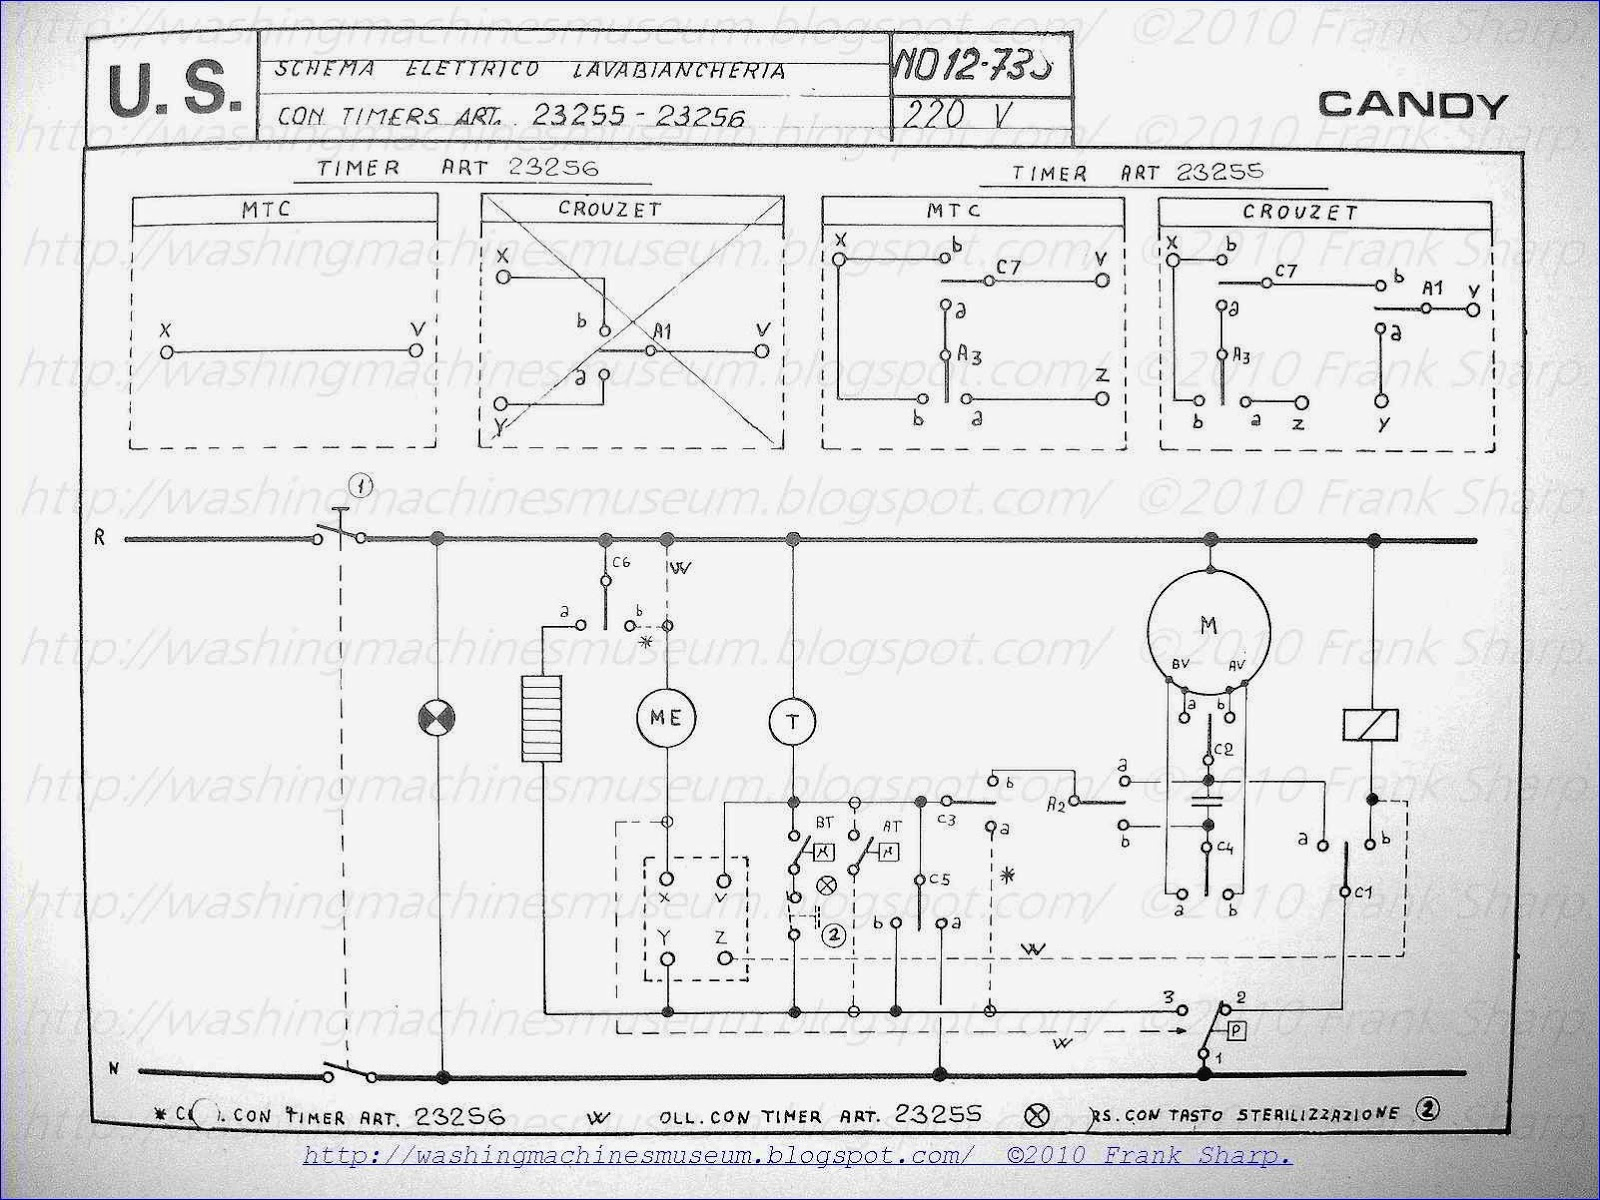 IMGH_06890__WMS indesit washing machine service manual wiring diagram 28 images wiring diagram for whirlpool washing machine at alyssarenee.co